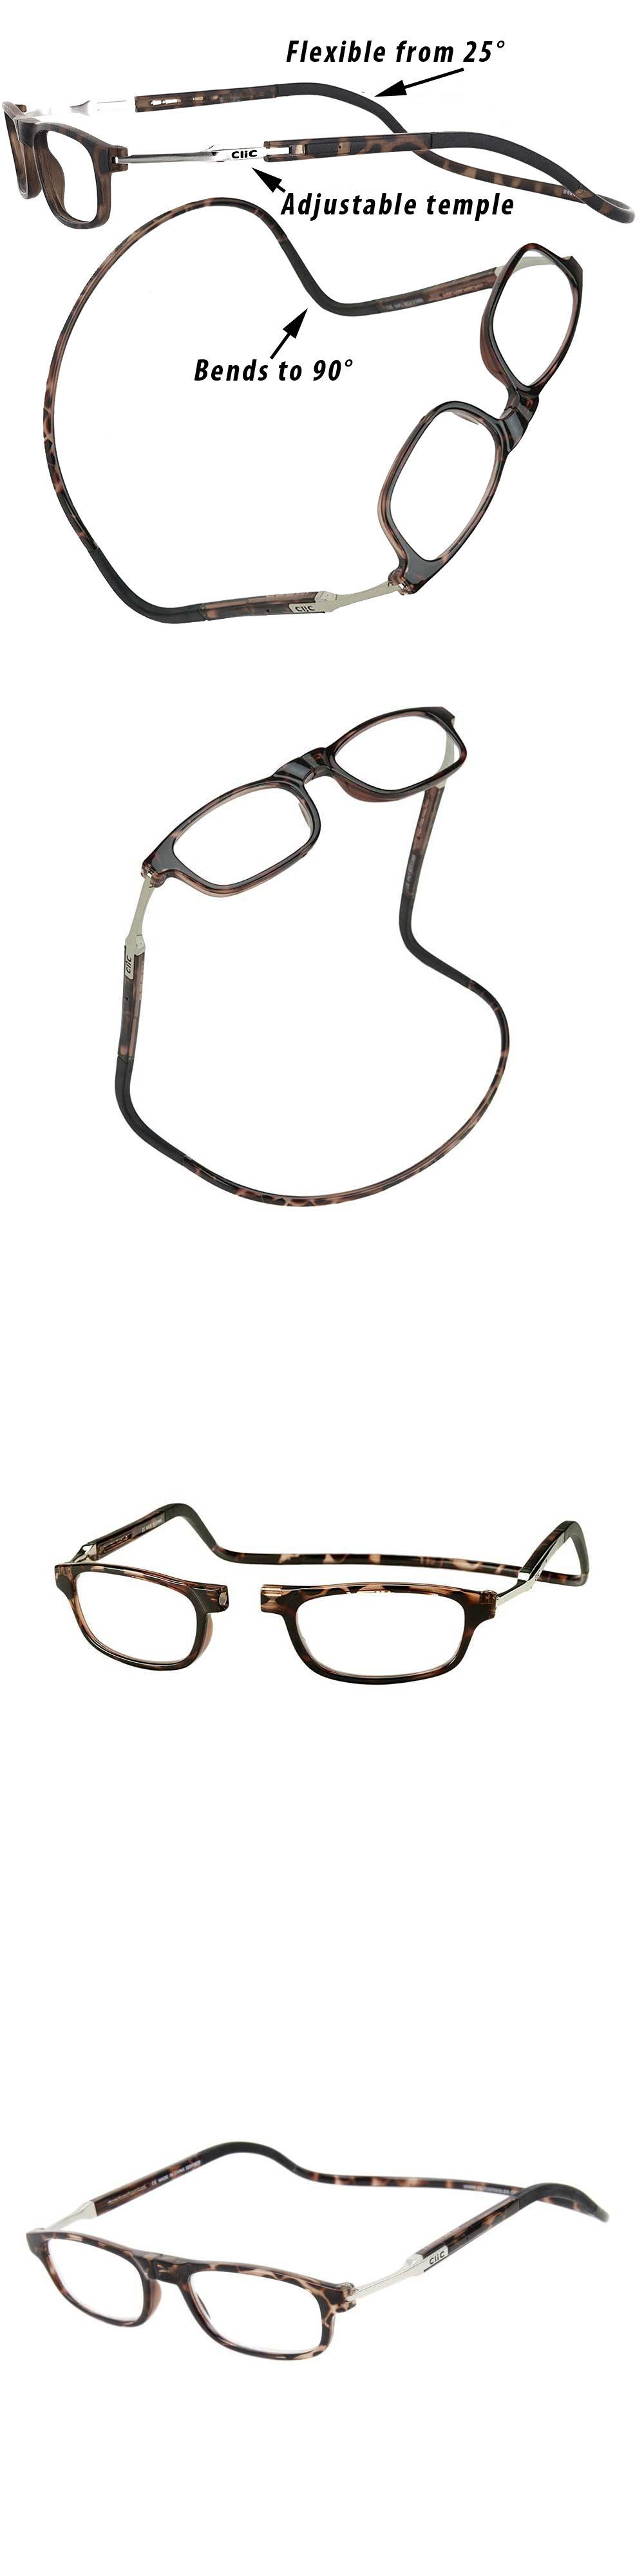 33b5016dce1a Reading Glasses  Clic Readers Flex Tortoise Neck-Hanging Magnetic Reading  Glasses